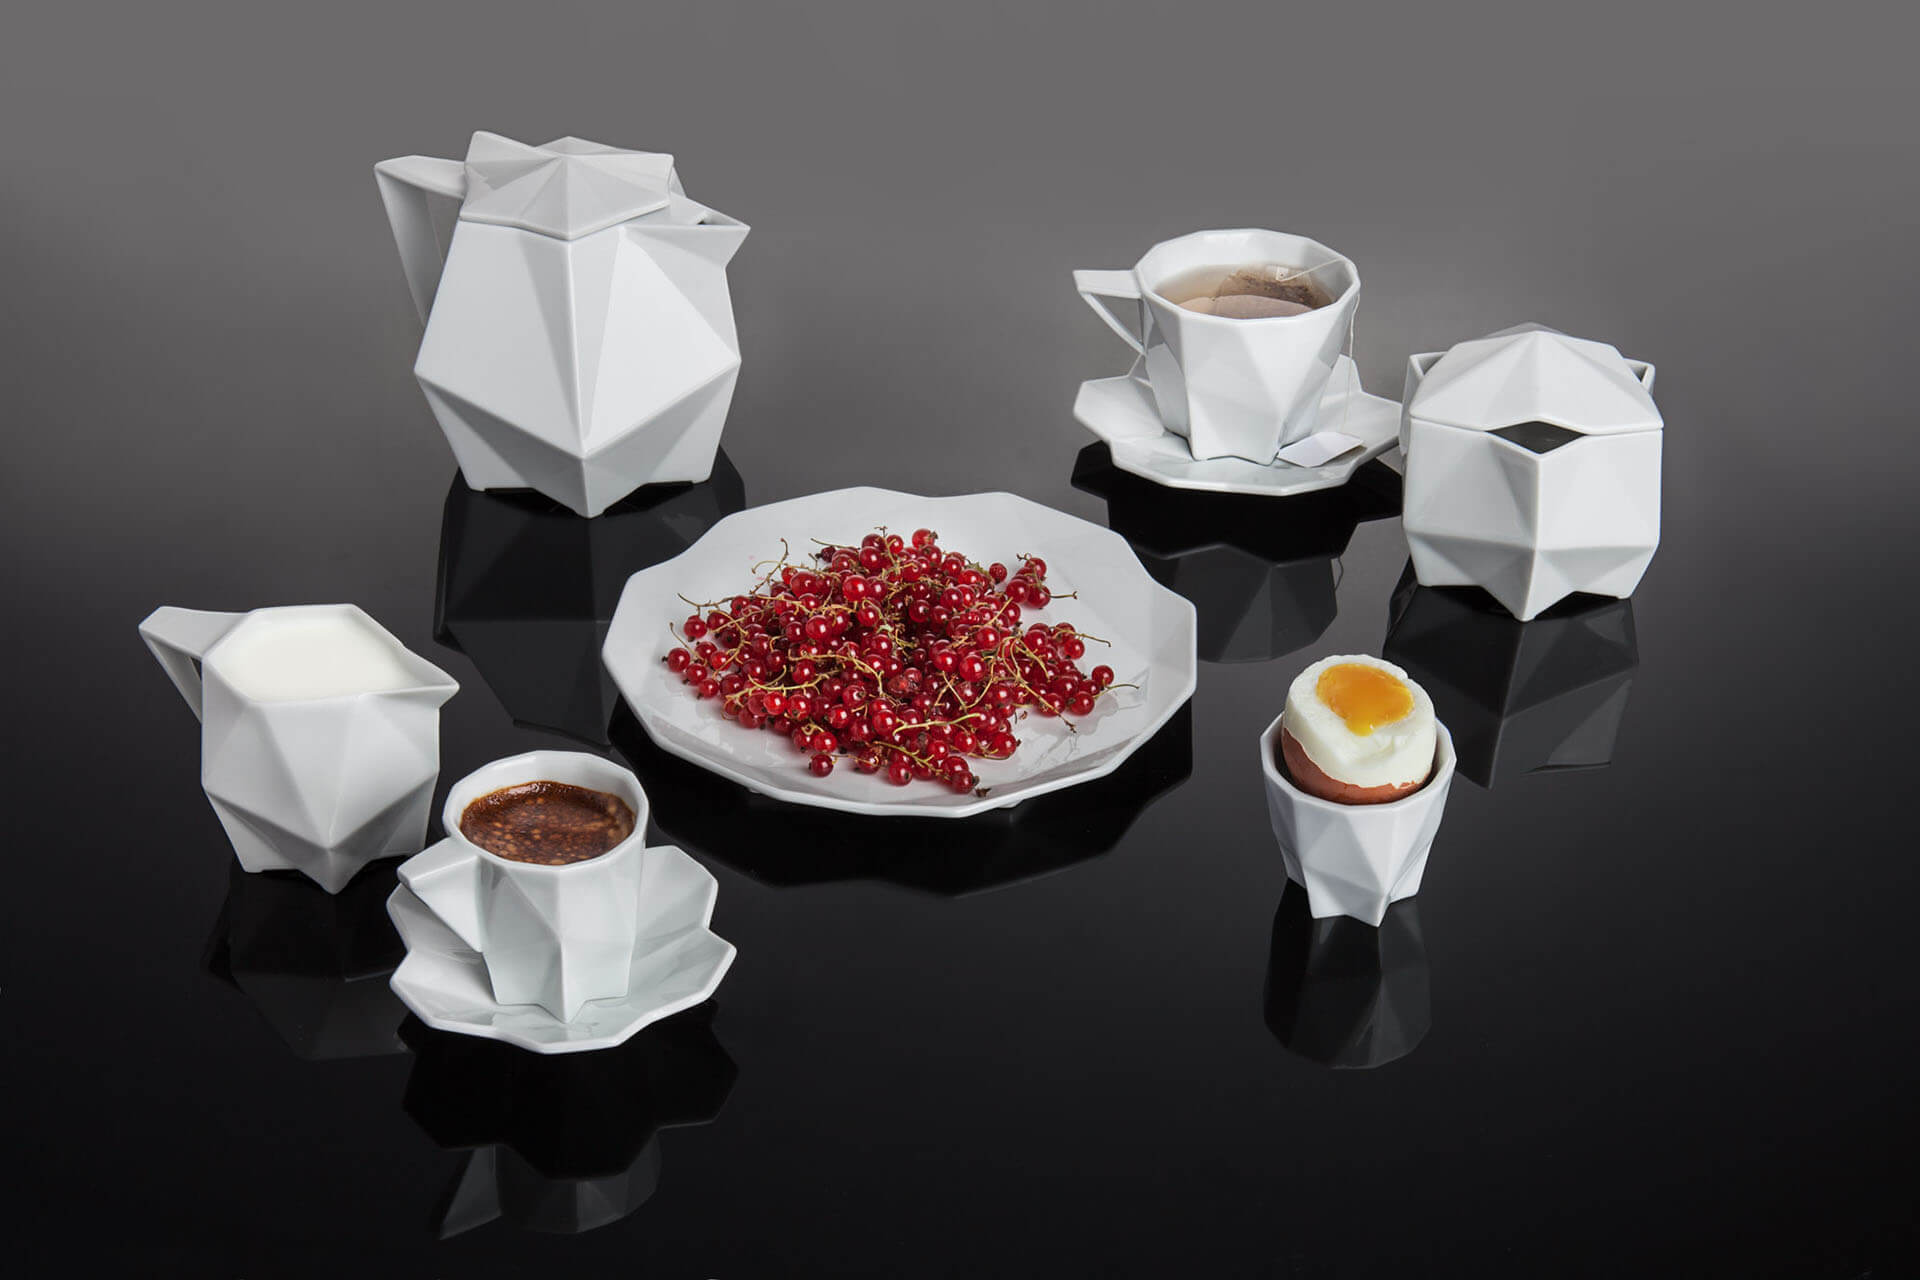 geometric-porcelain-set-breakfast-with-food-1